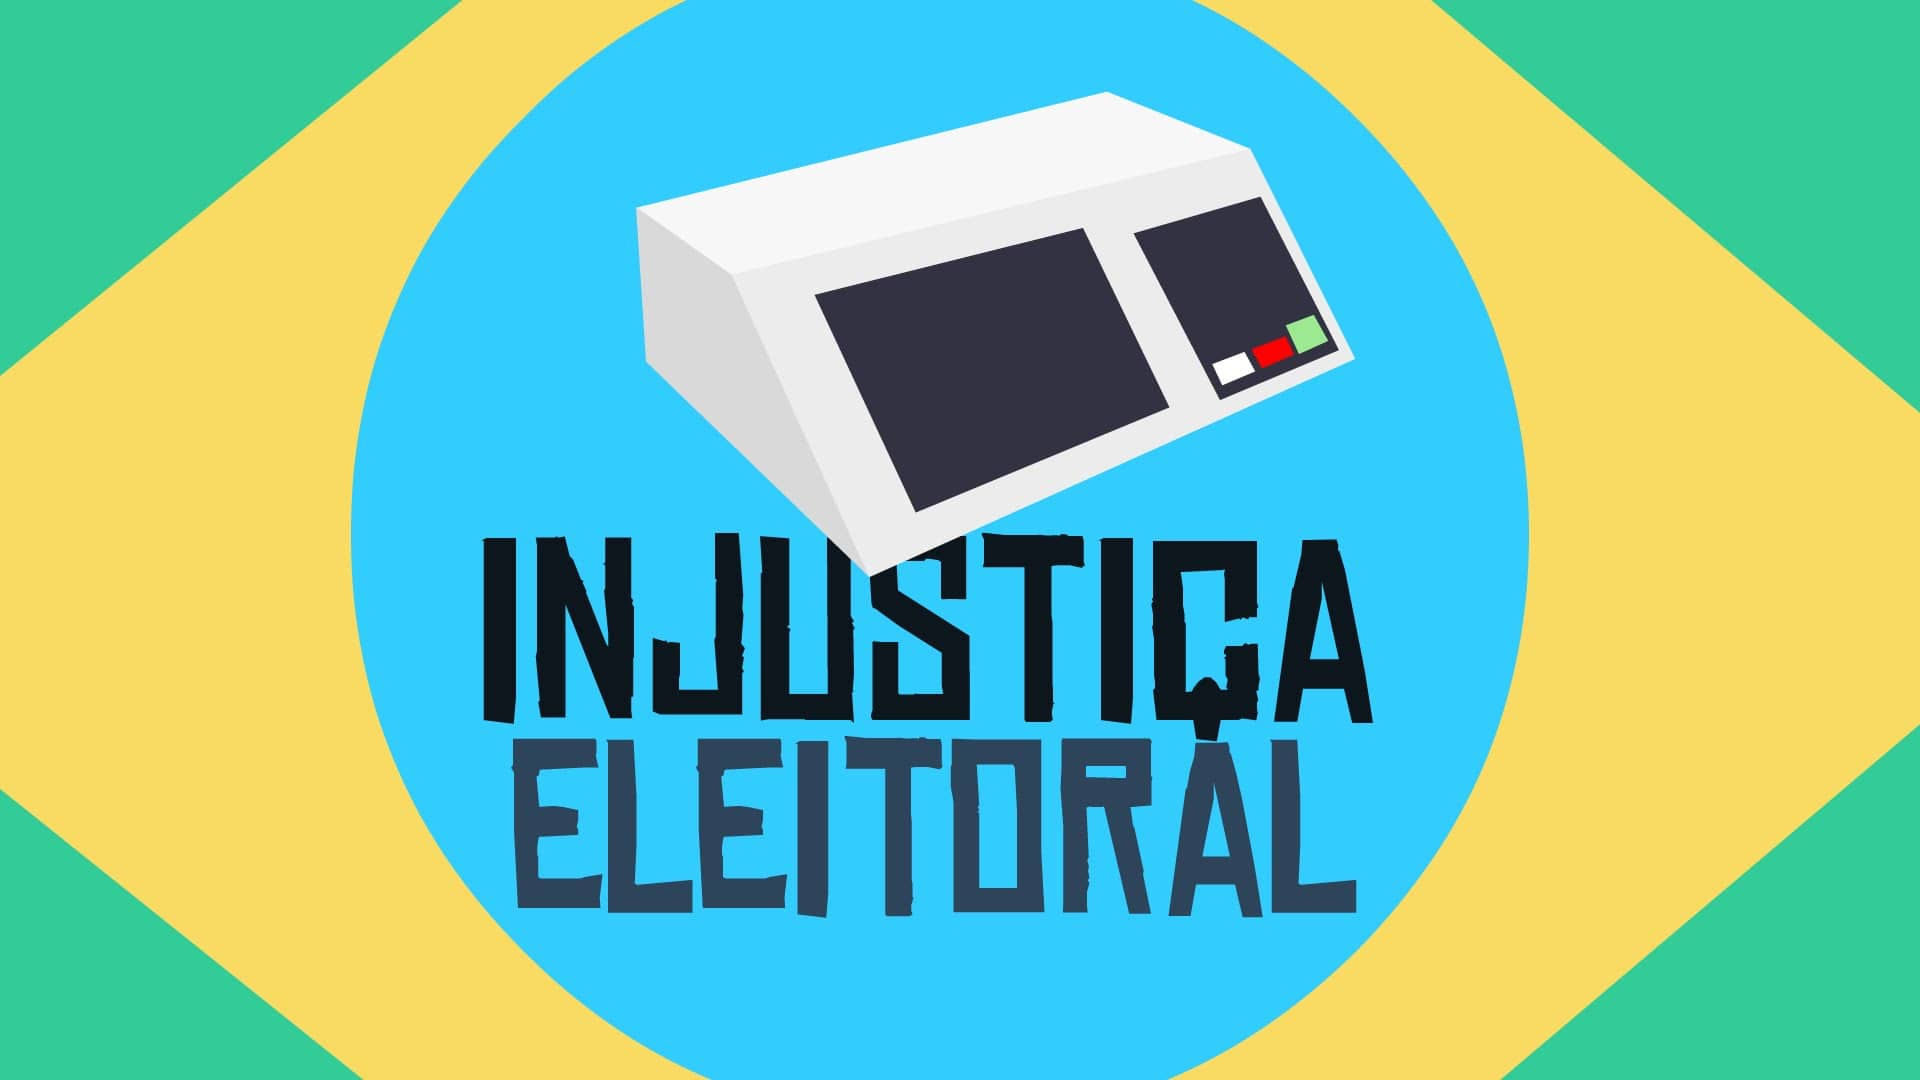 - injusticcca7a eleitoral blog tediado - Video thumbnail for youtube video Injustiça Eleitoral – Blog Tediado